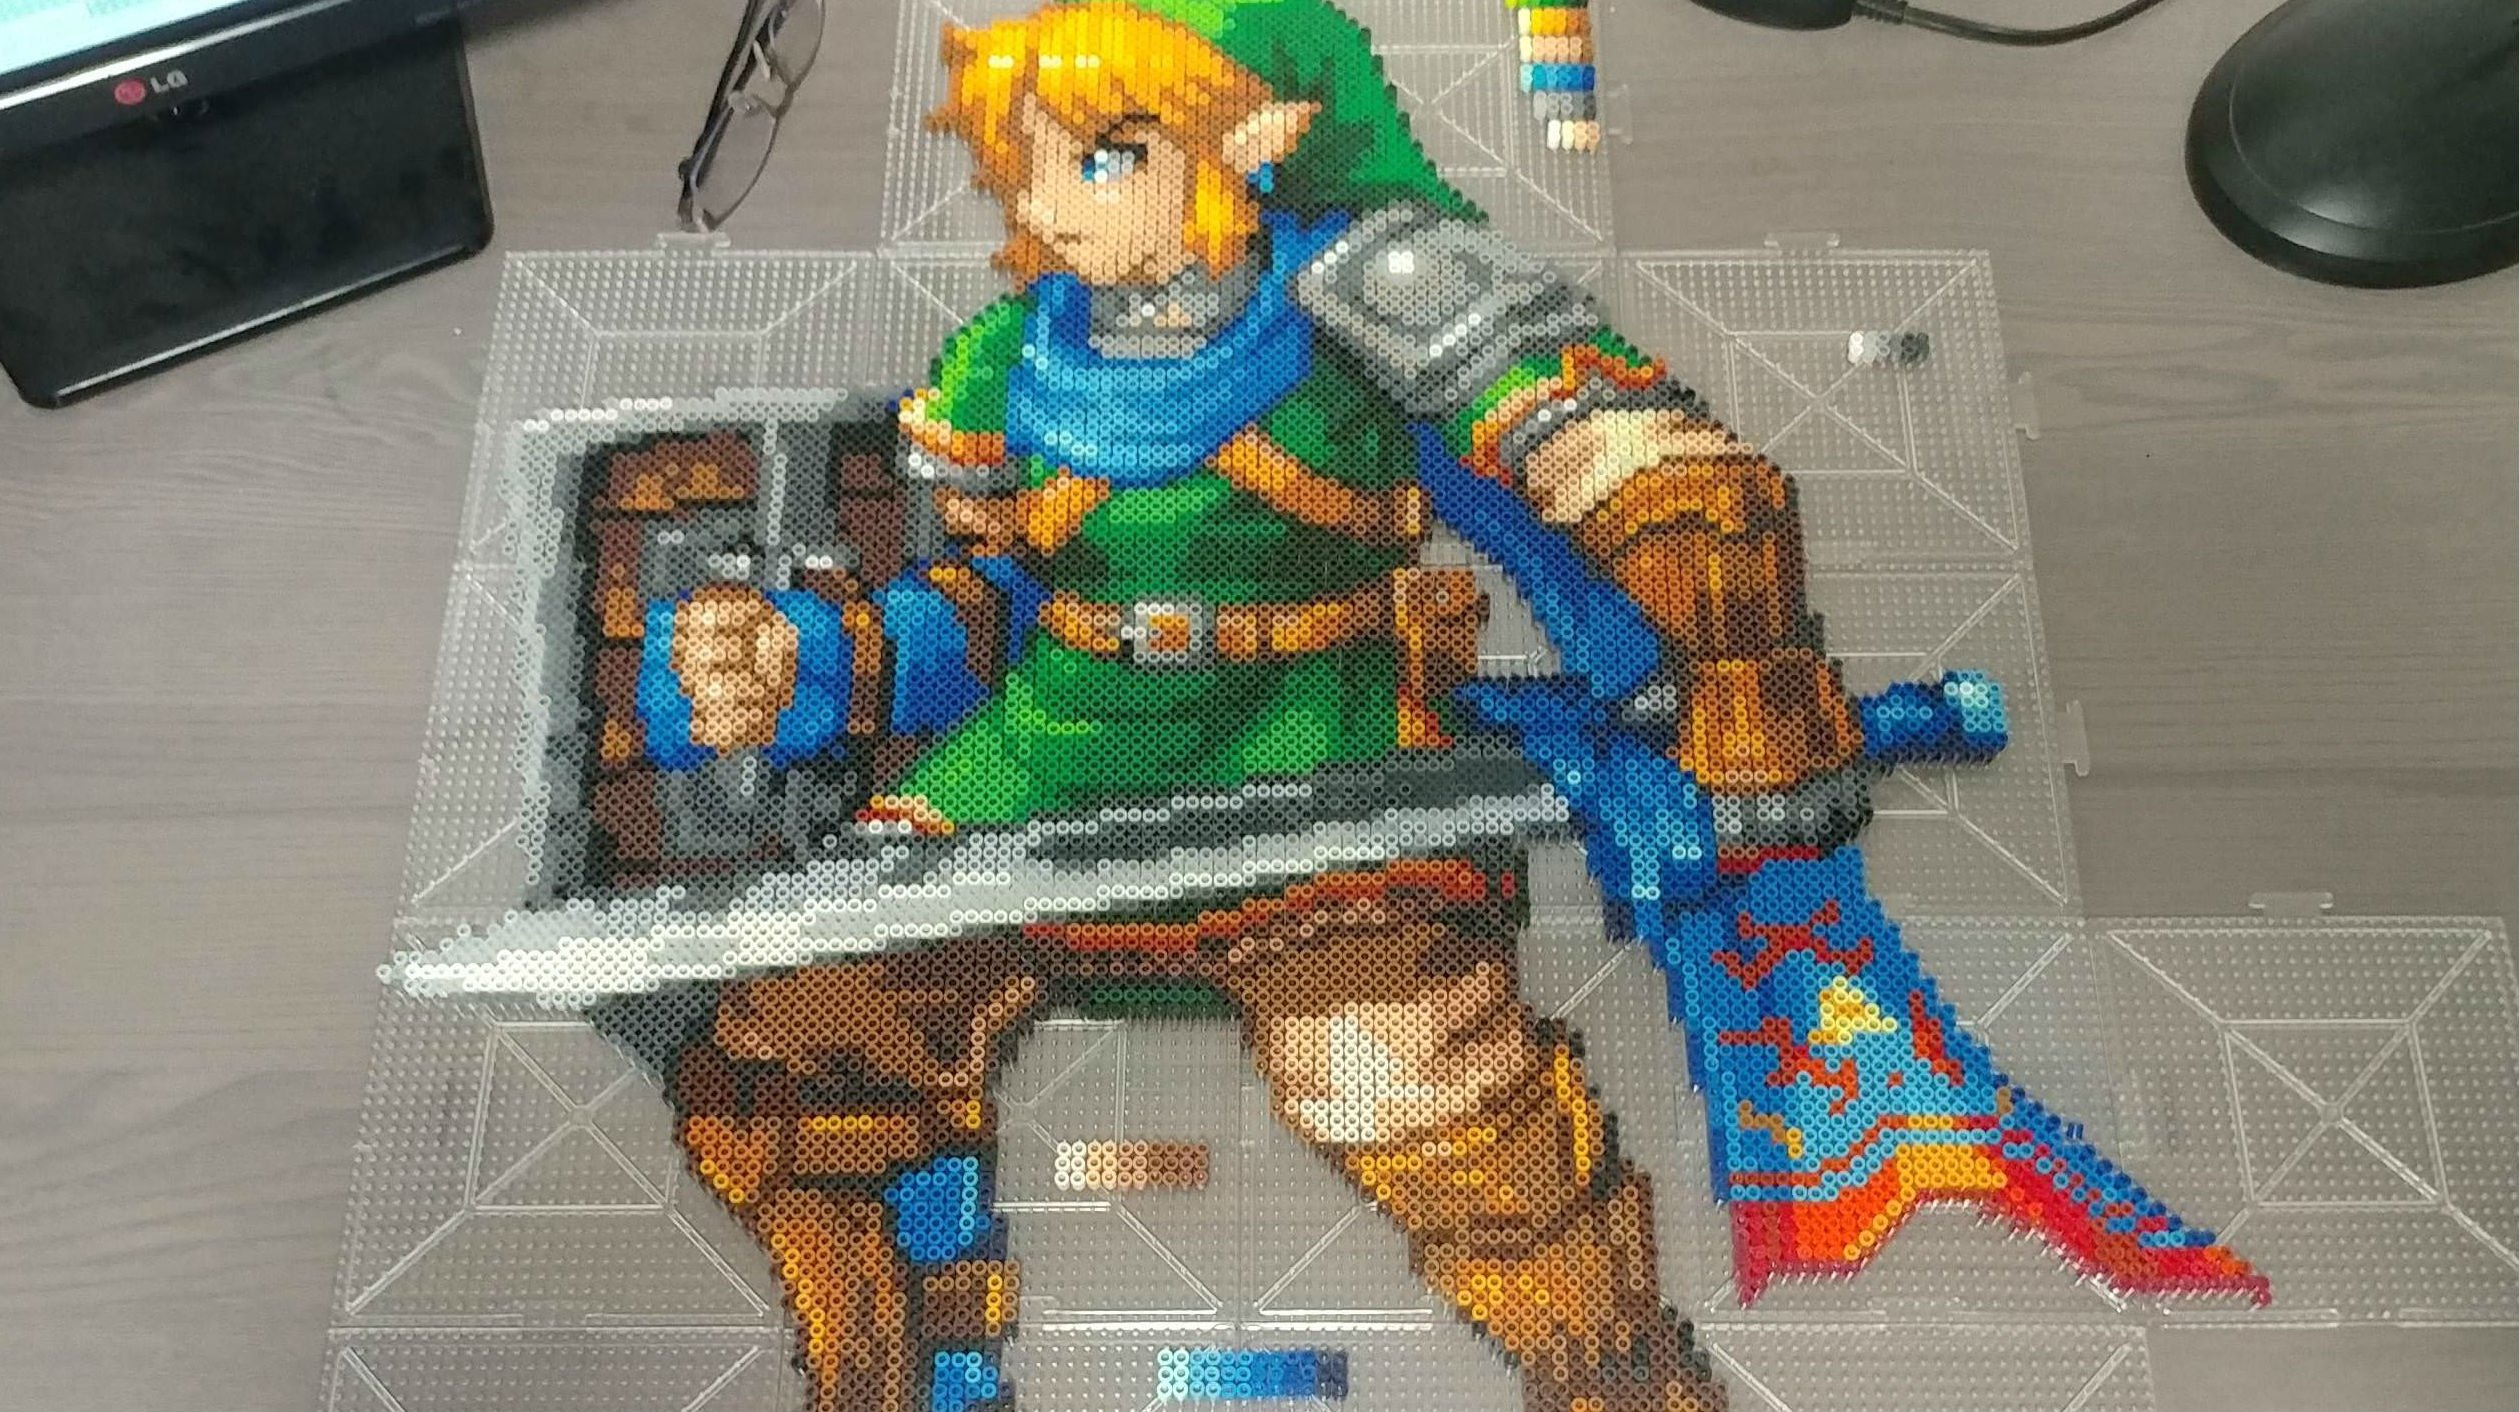 I'm extremely tempted to make this amazing Link bead art on my own screenshot